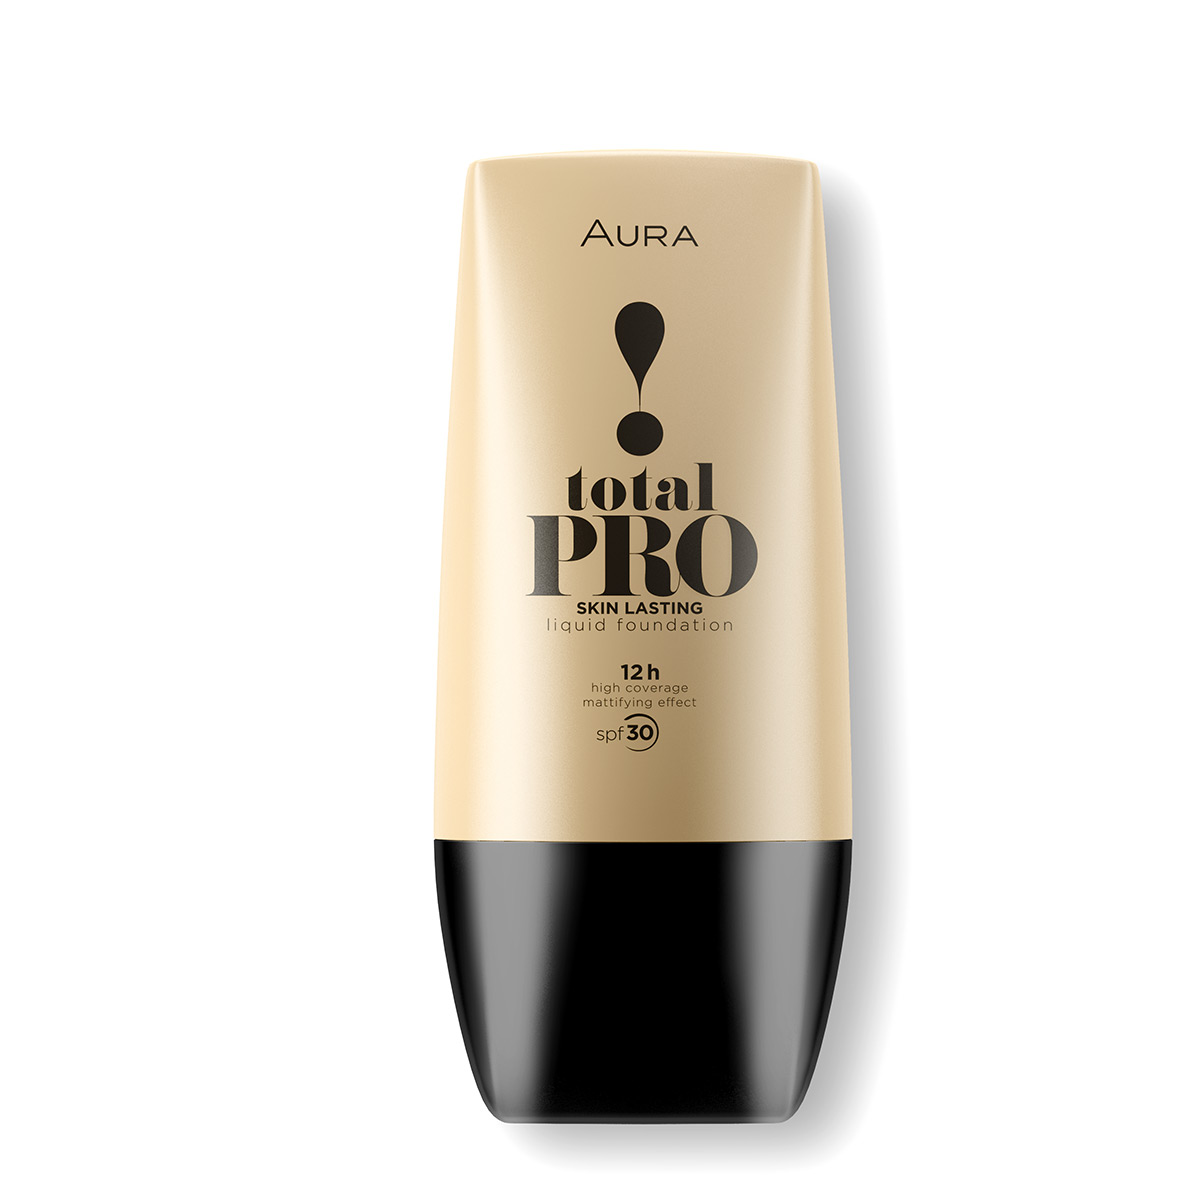 Liquid foundation high coverage effect TOTAL PRO 411 Creme